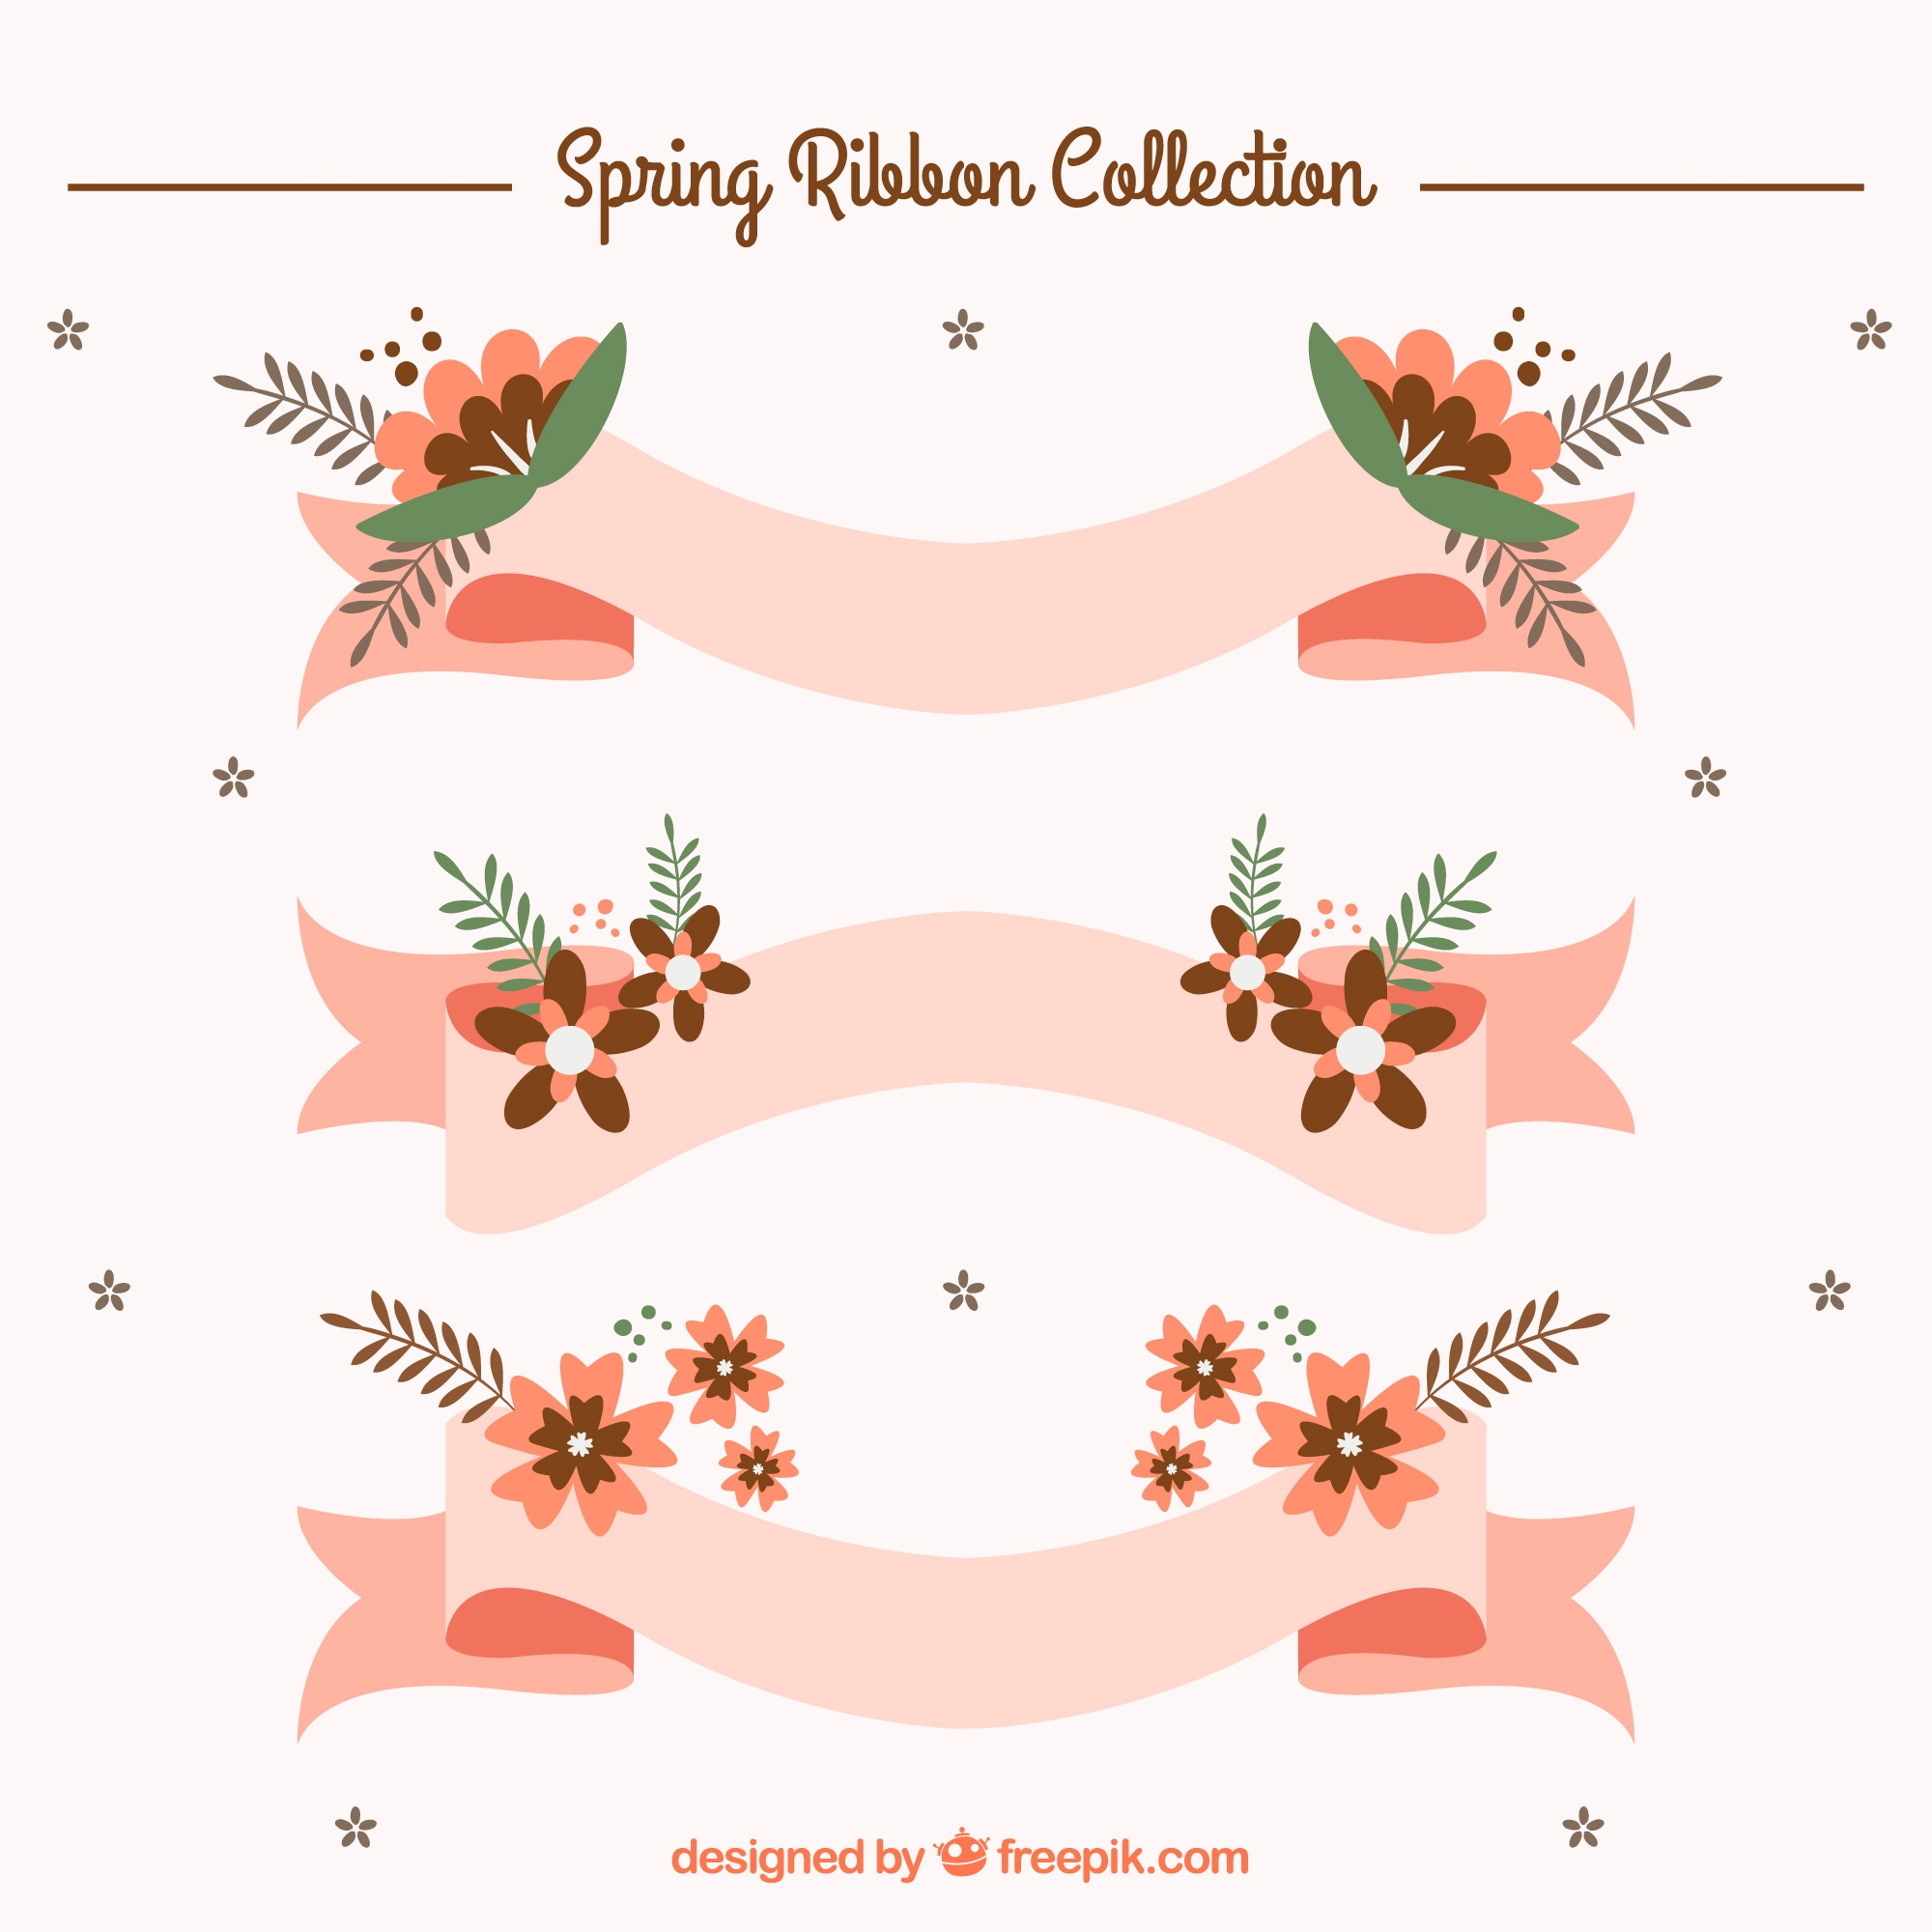 Pink ribbons with spring flowers in flat design